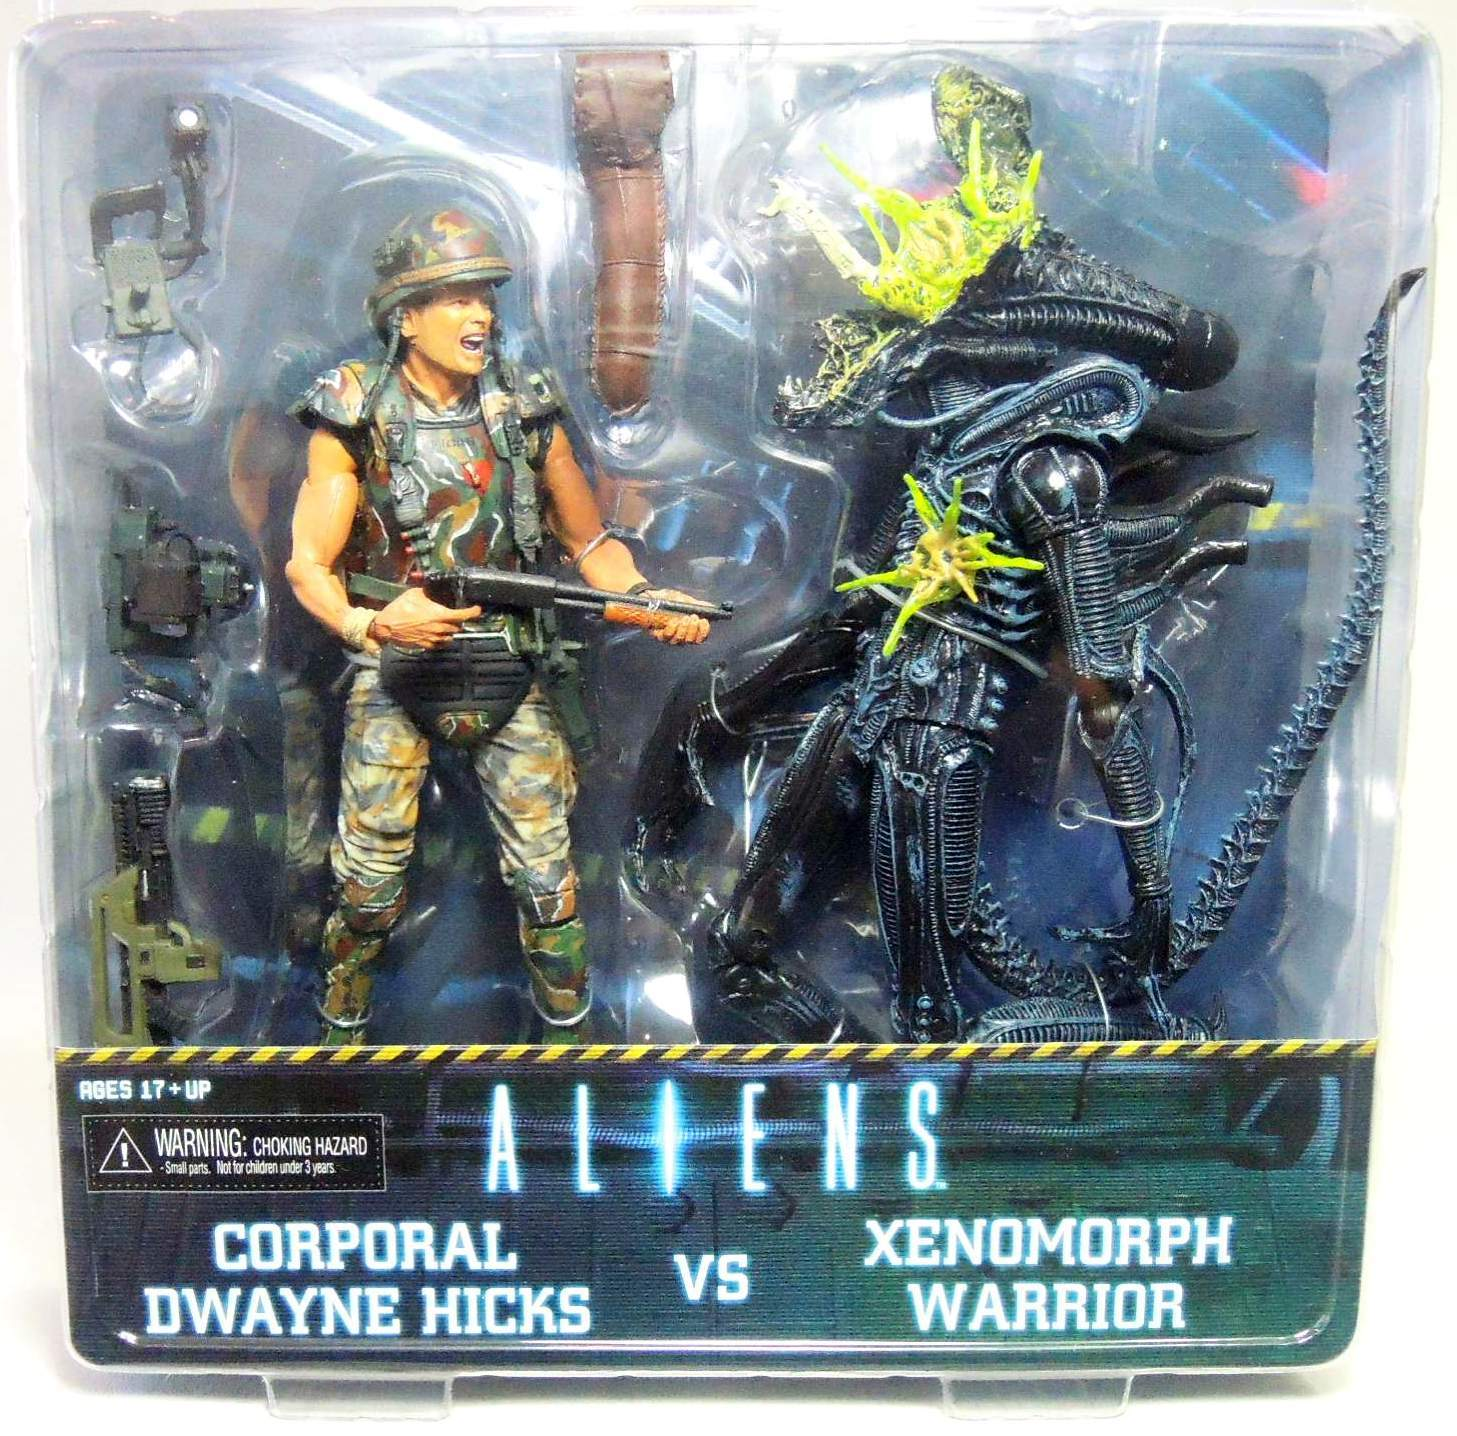 NECA Aliens 2-pack Corp Hicks vs Xenomorph Warrior NECA, Aliens, Action Figures, 2013, scifi, movie